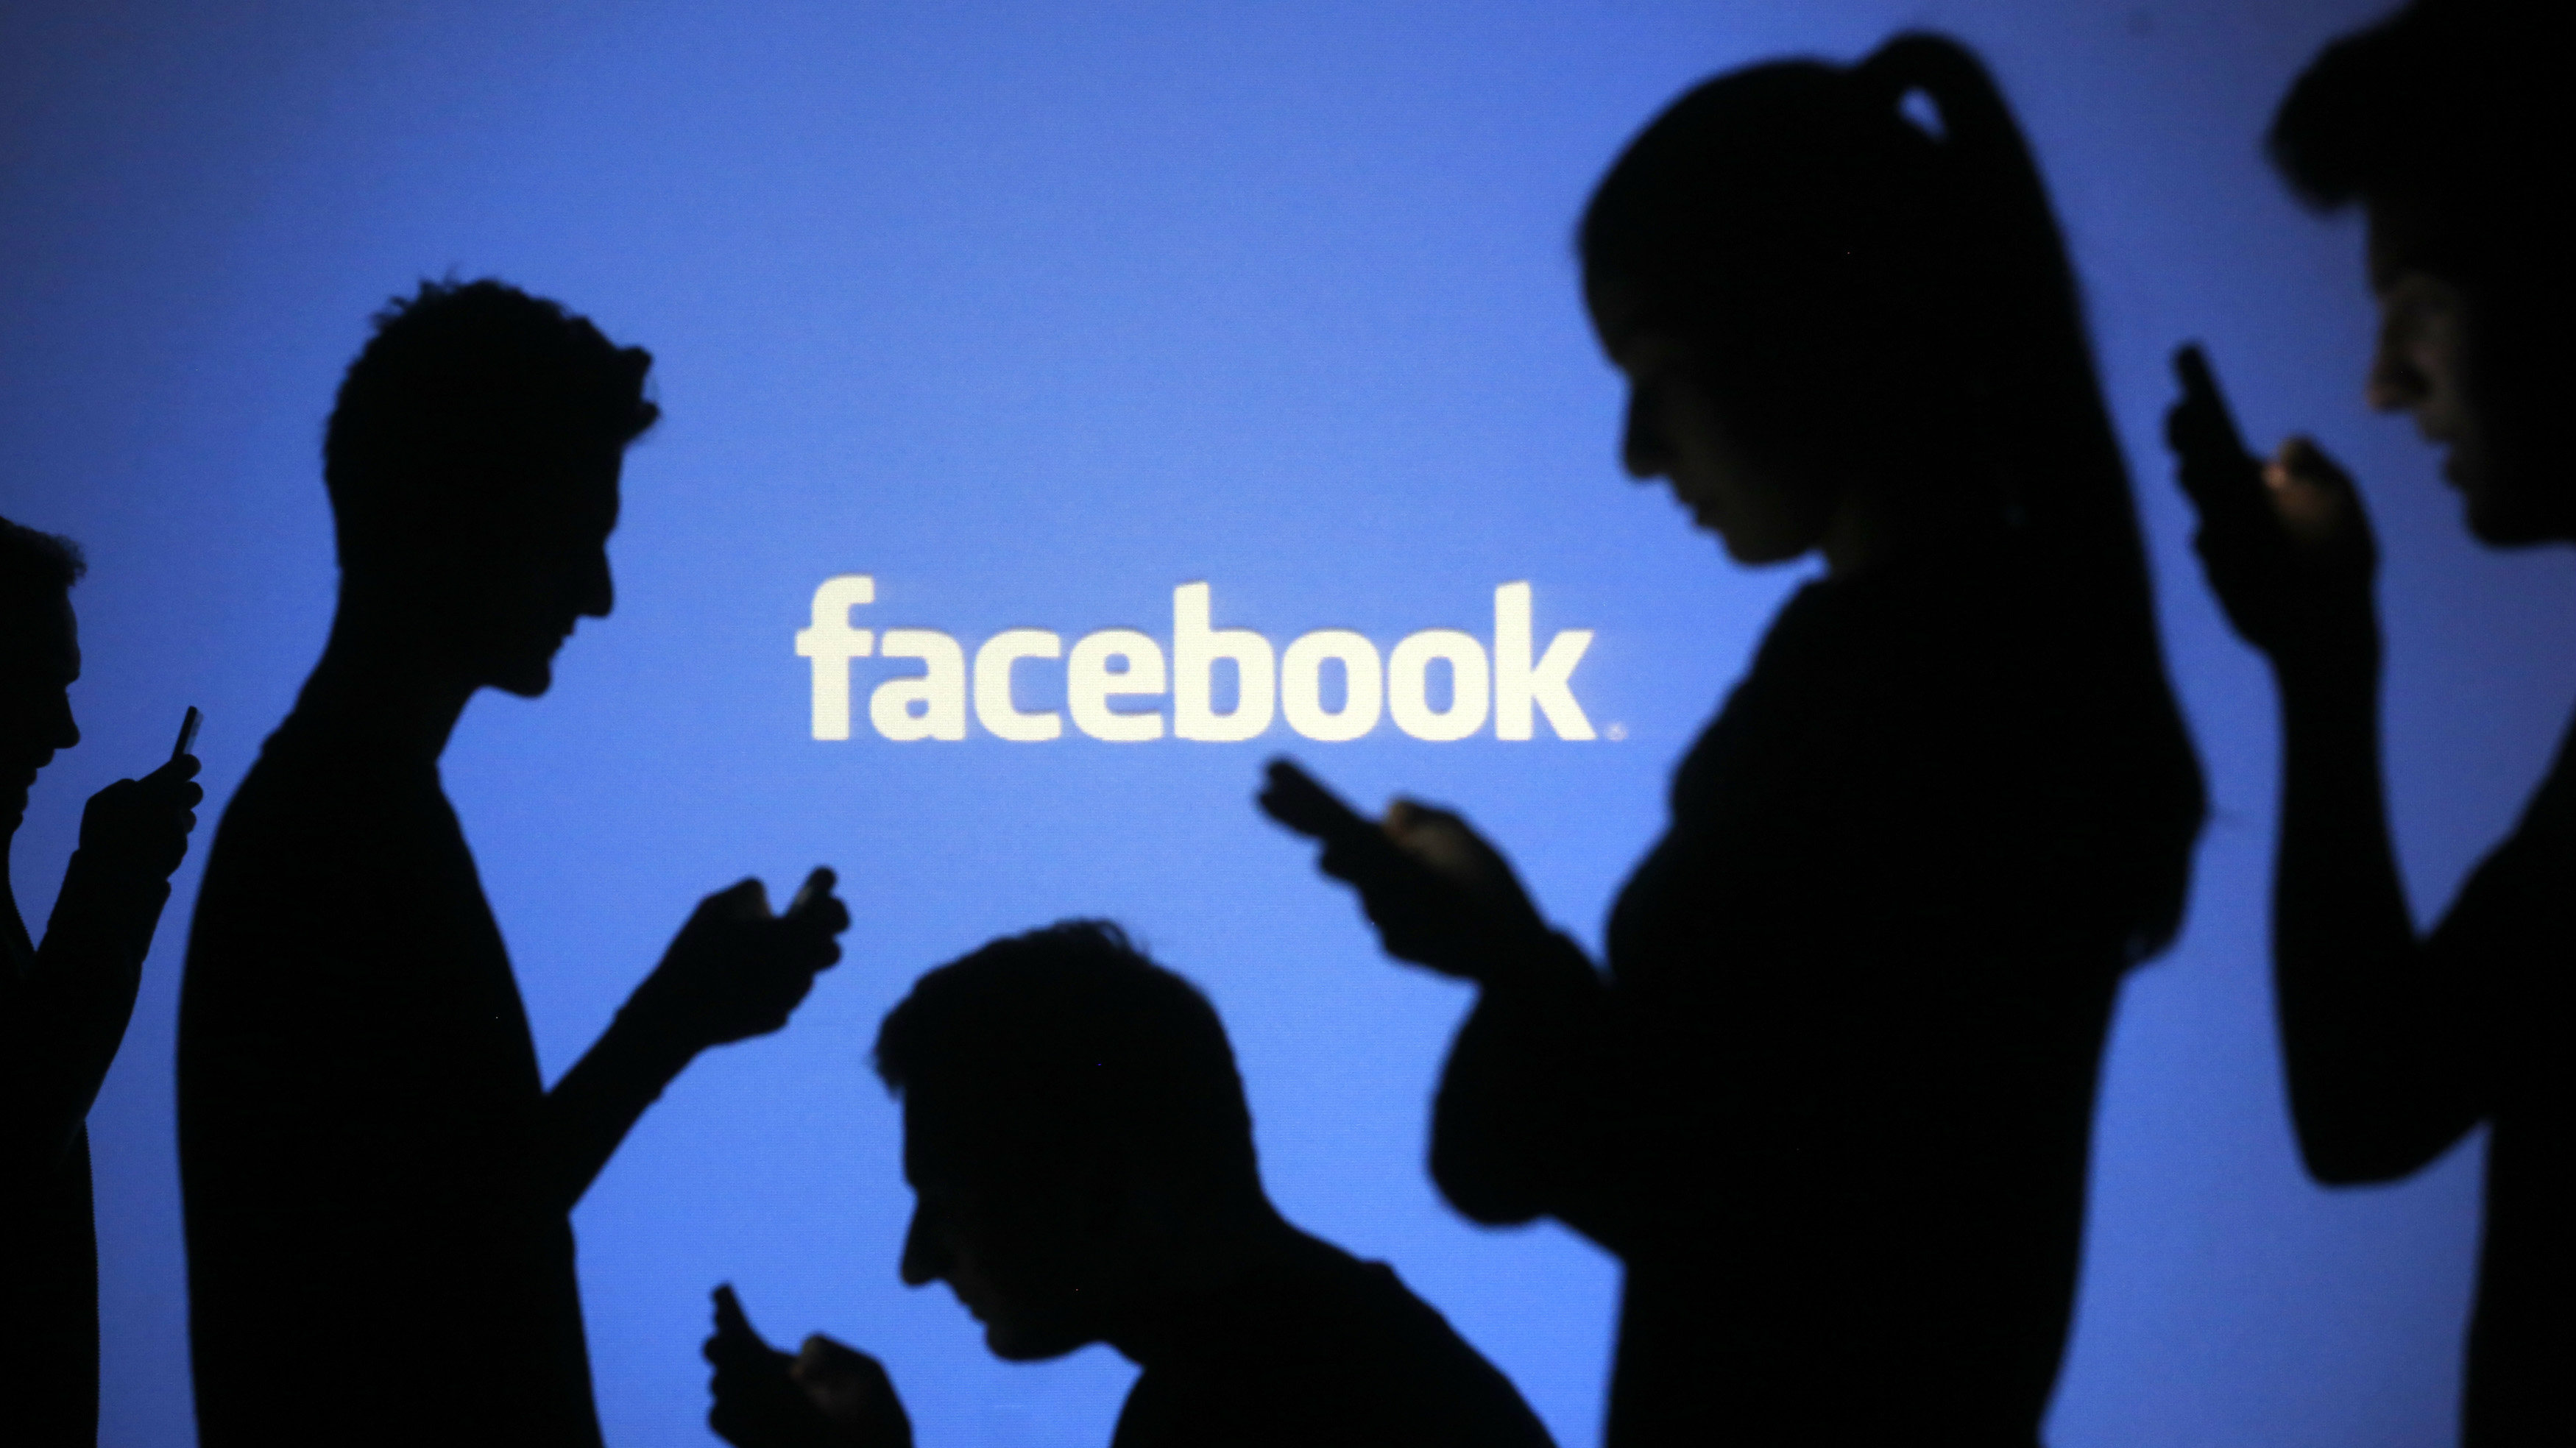 Social media is polarizing users faster than ever